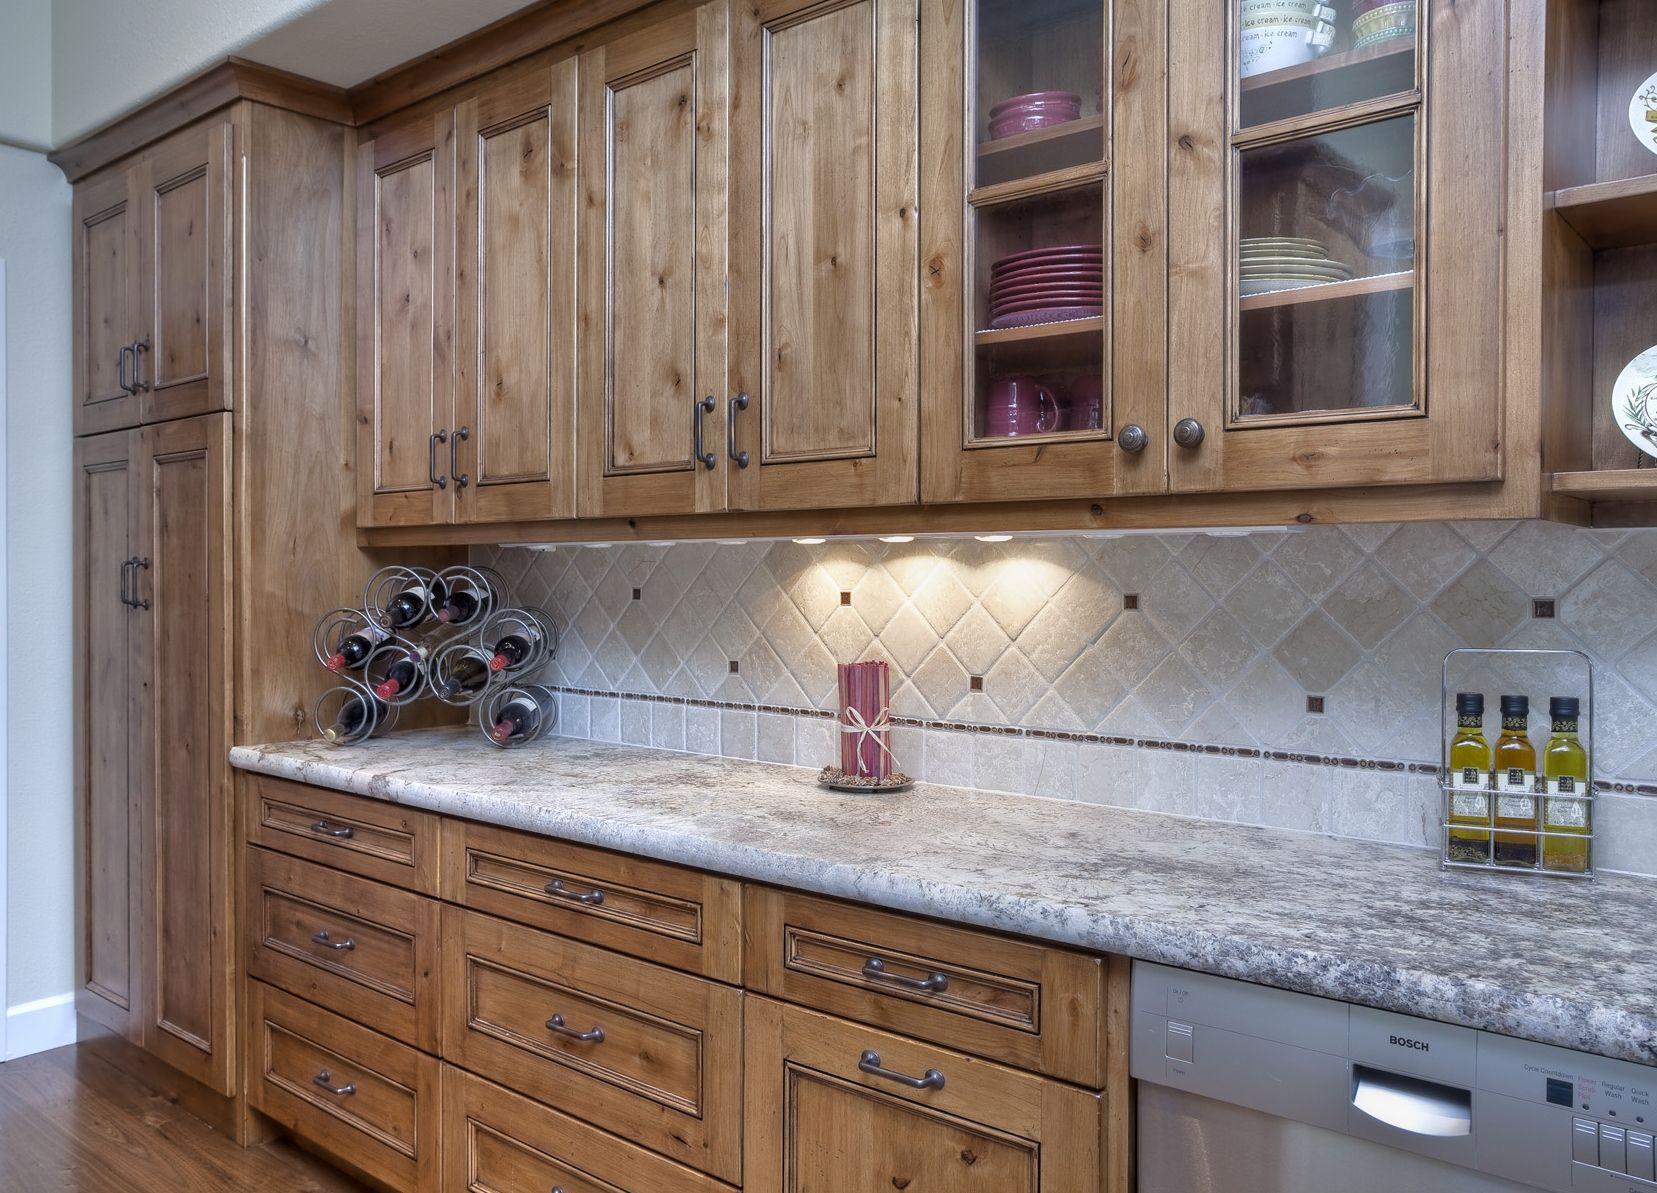 Alder Cabinets Kitchen How To Build Your Own Island Rustic Knotty With Stain And Glaze Finish By